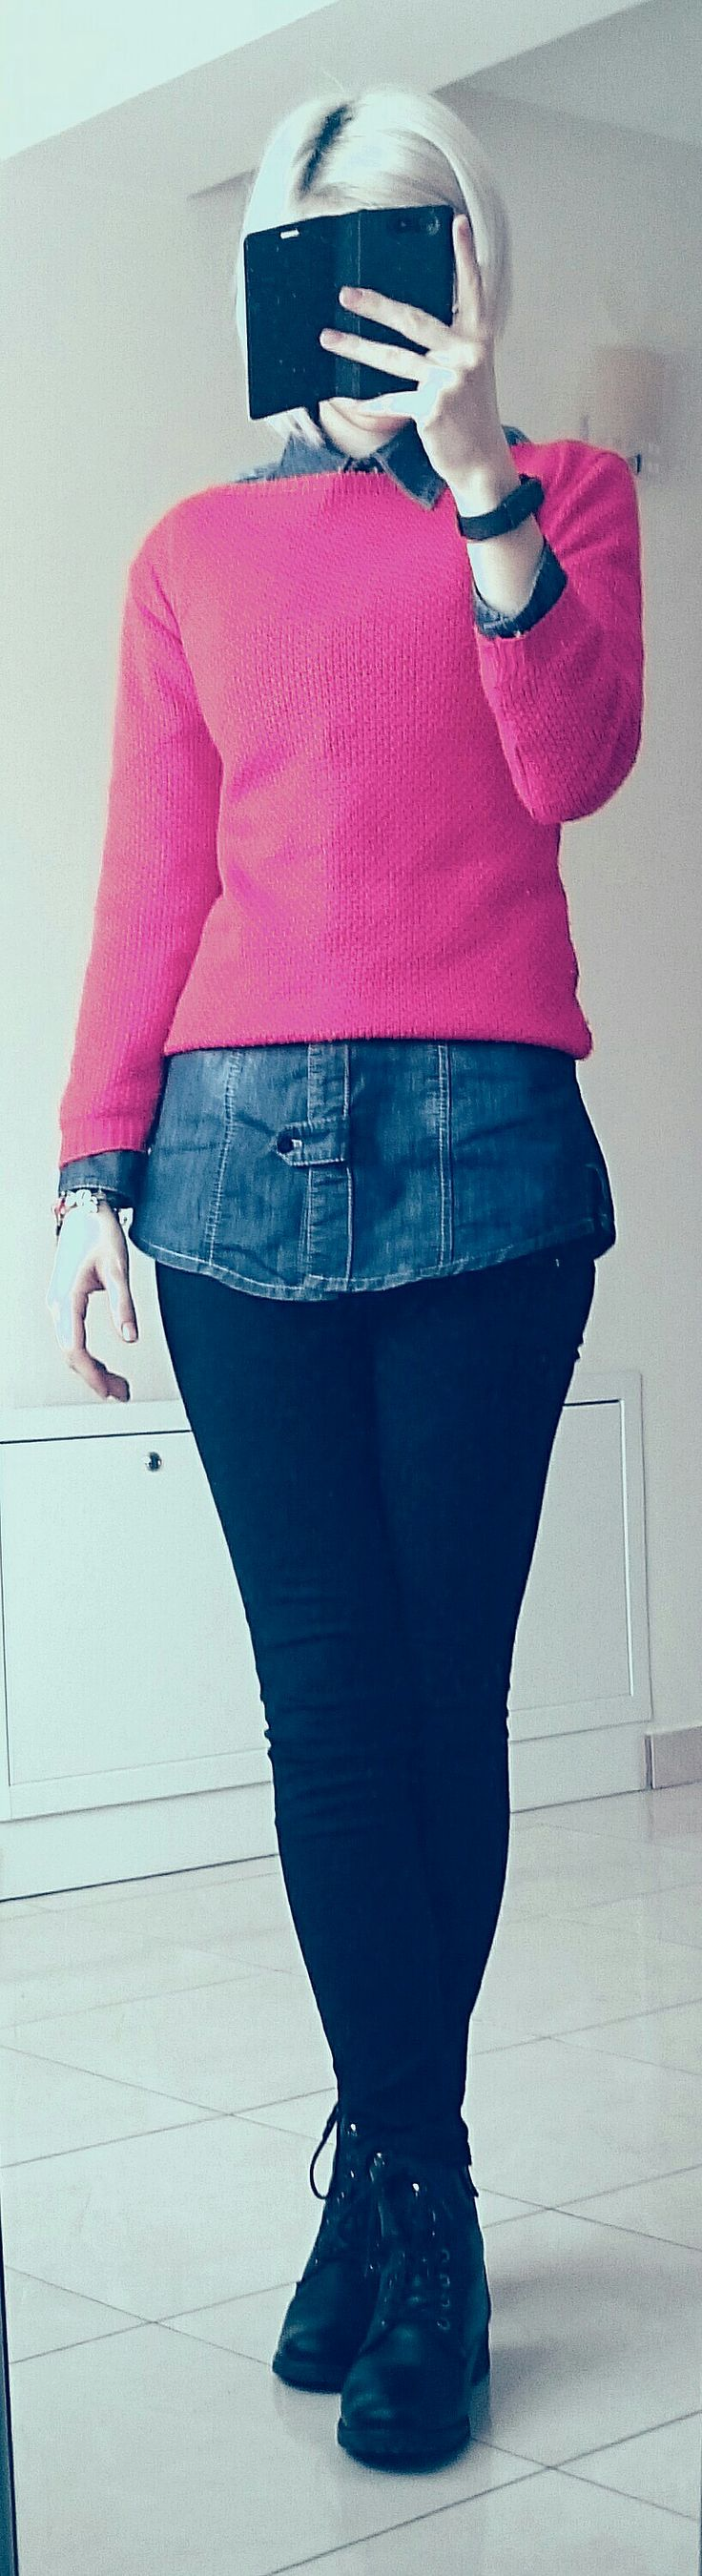 OOTD: blue denim shirt, coral red pullover, black skinny ankle jeans, black combat boots  Combine that with black mascara and matte red lipstick